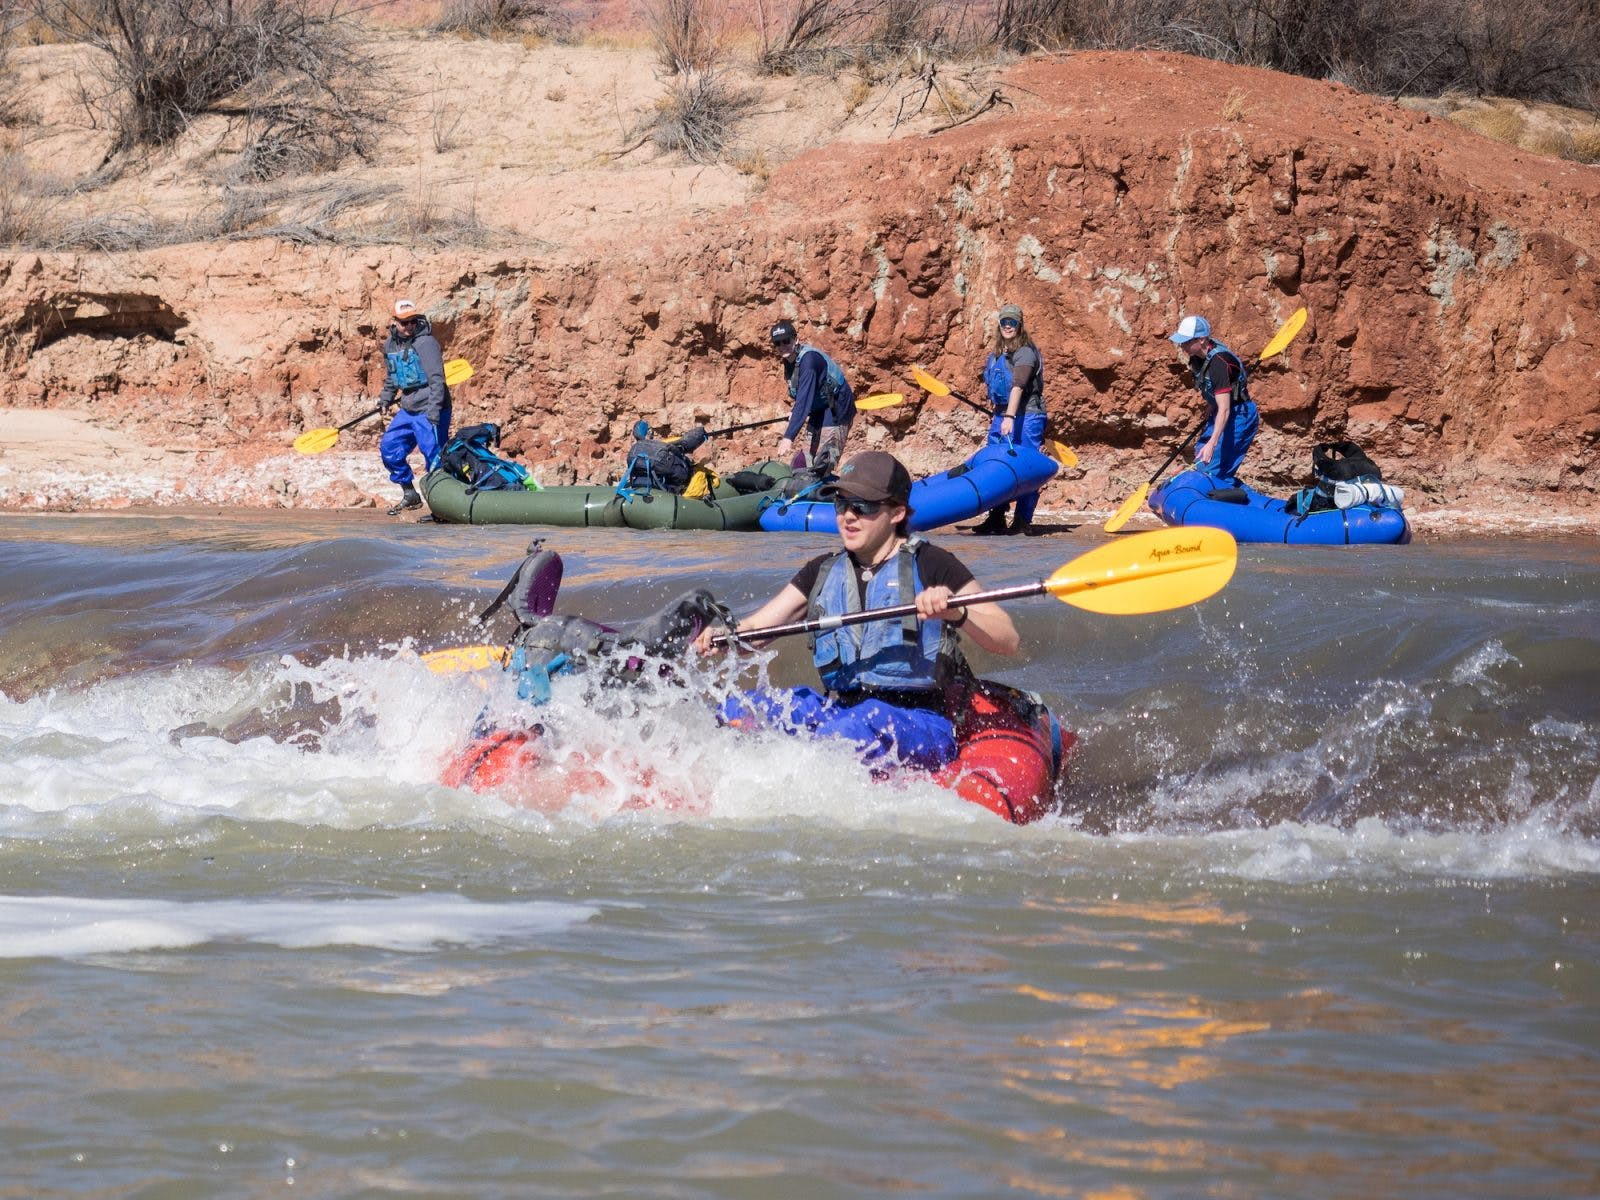 Lacey enjoying a little whitewater fun on the Colorado River.